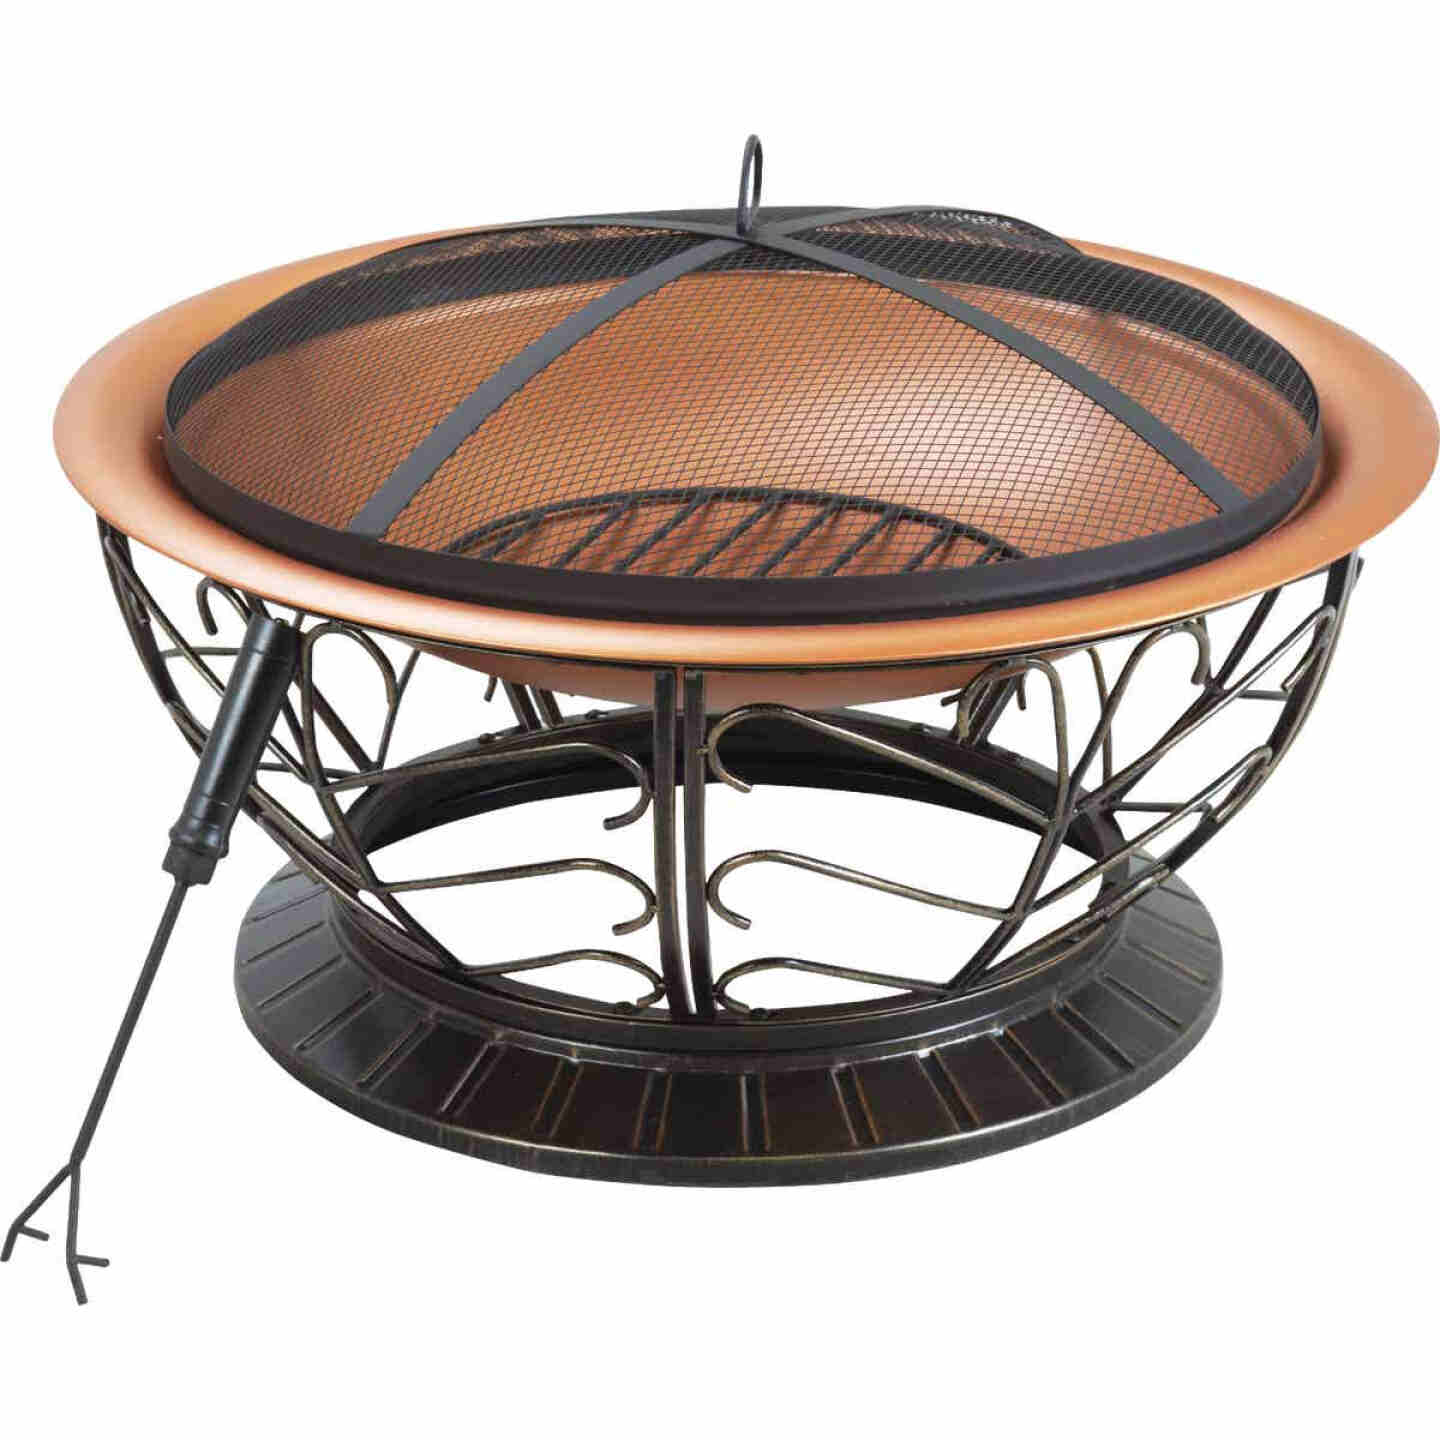 Outdoor Expressions 30 In. Coppertone Round Steel Fire Pit Image 1